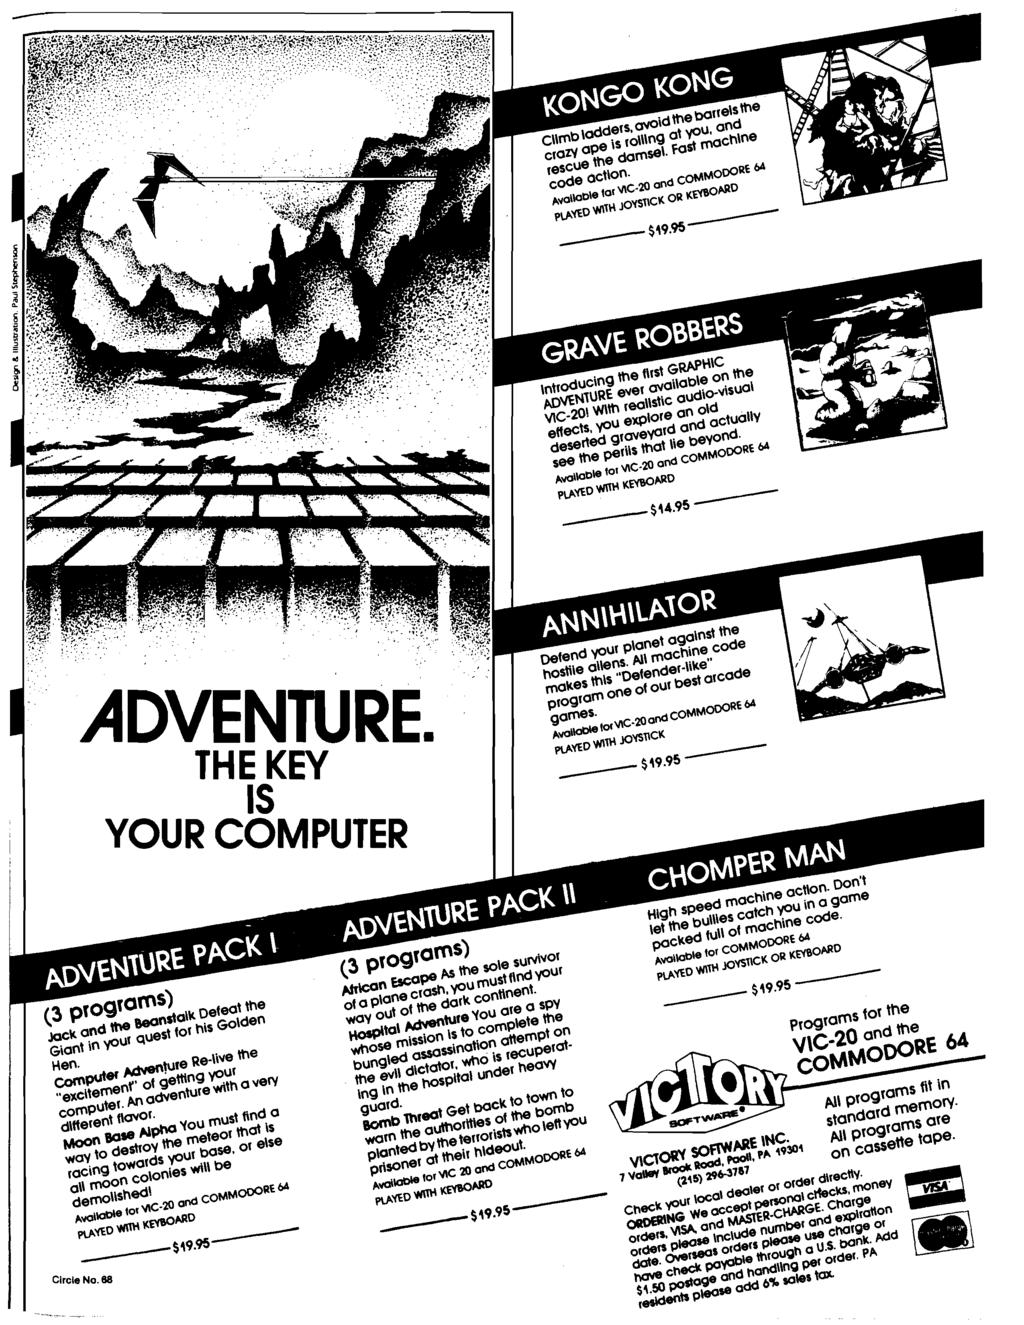 Advancing Computer Knowledge Pdf Commodore 64 Rev A Motherboard Schematics From 1982